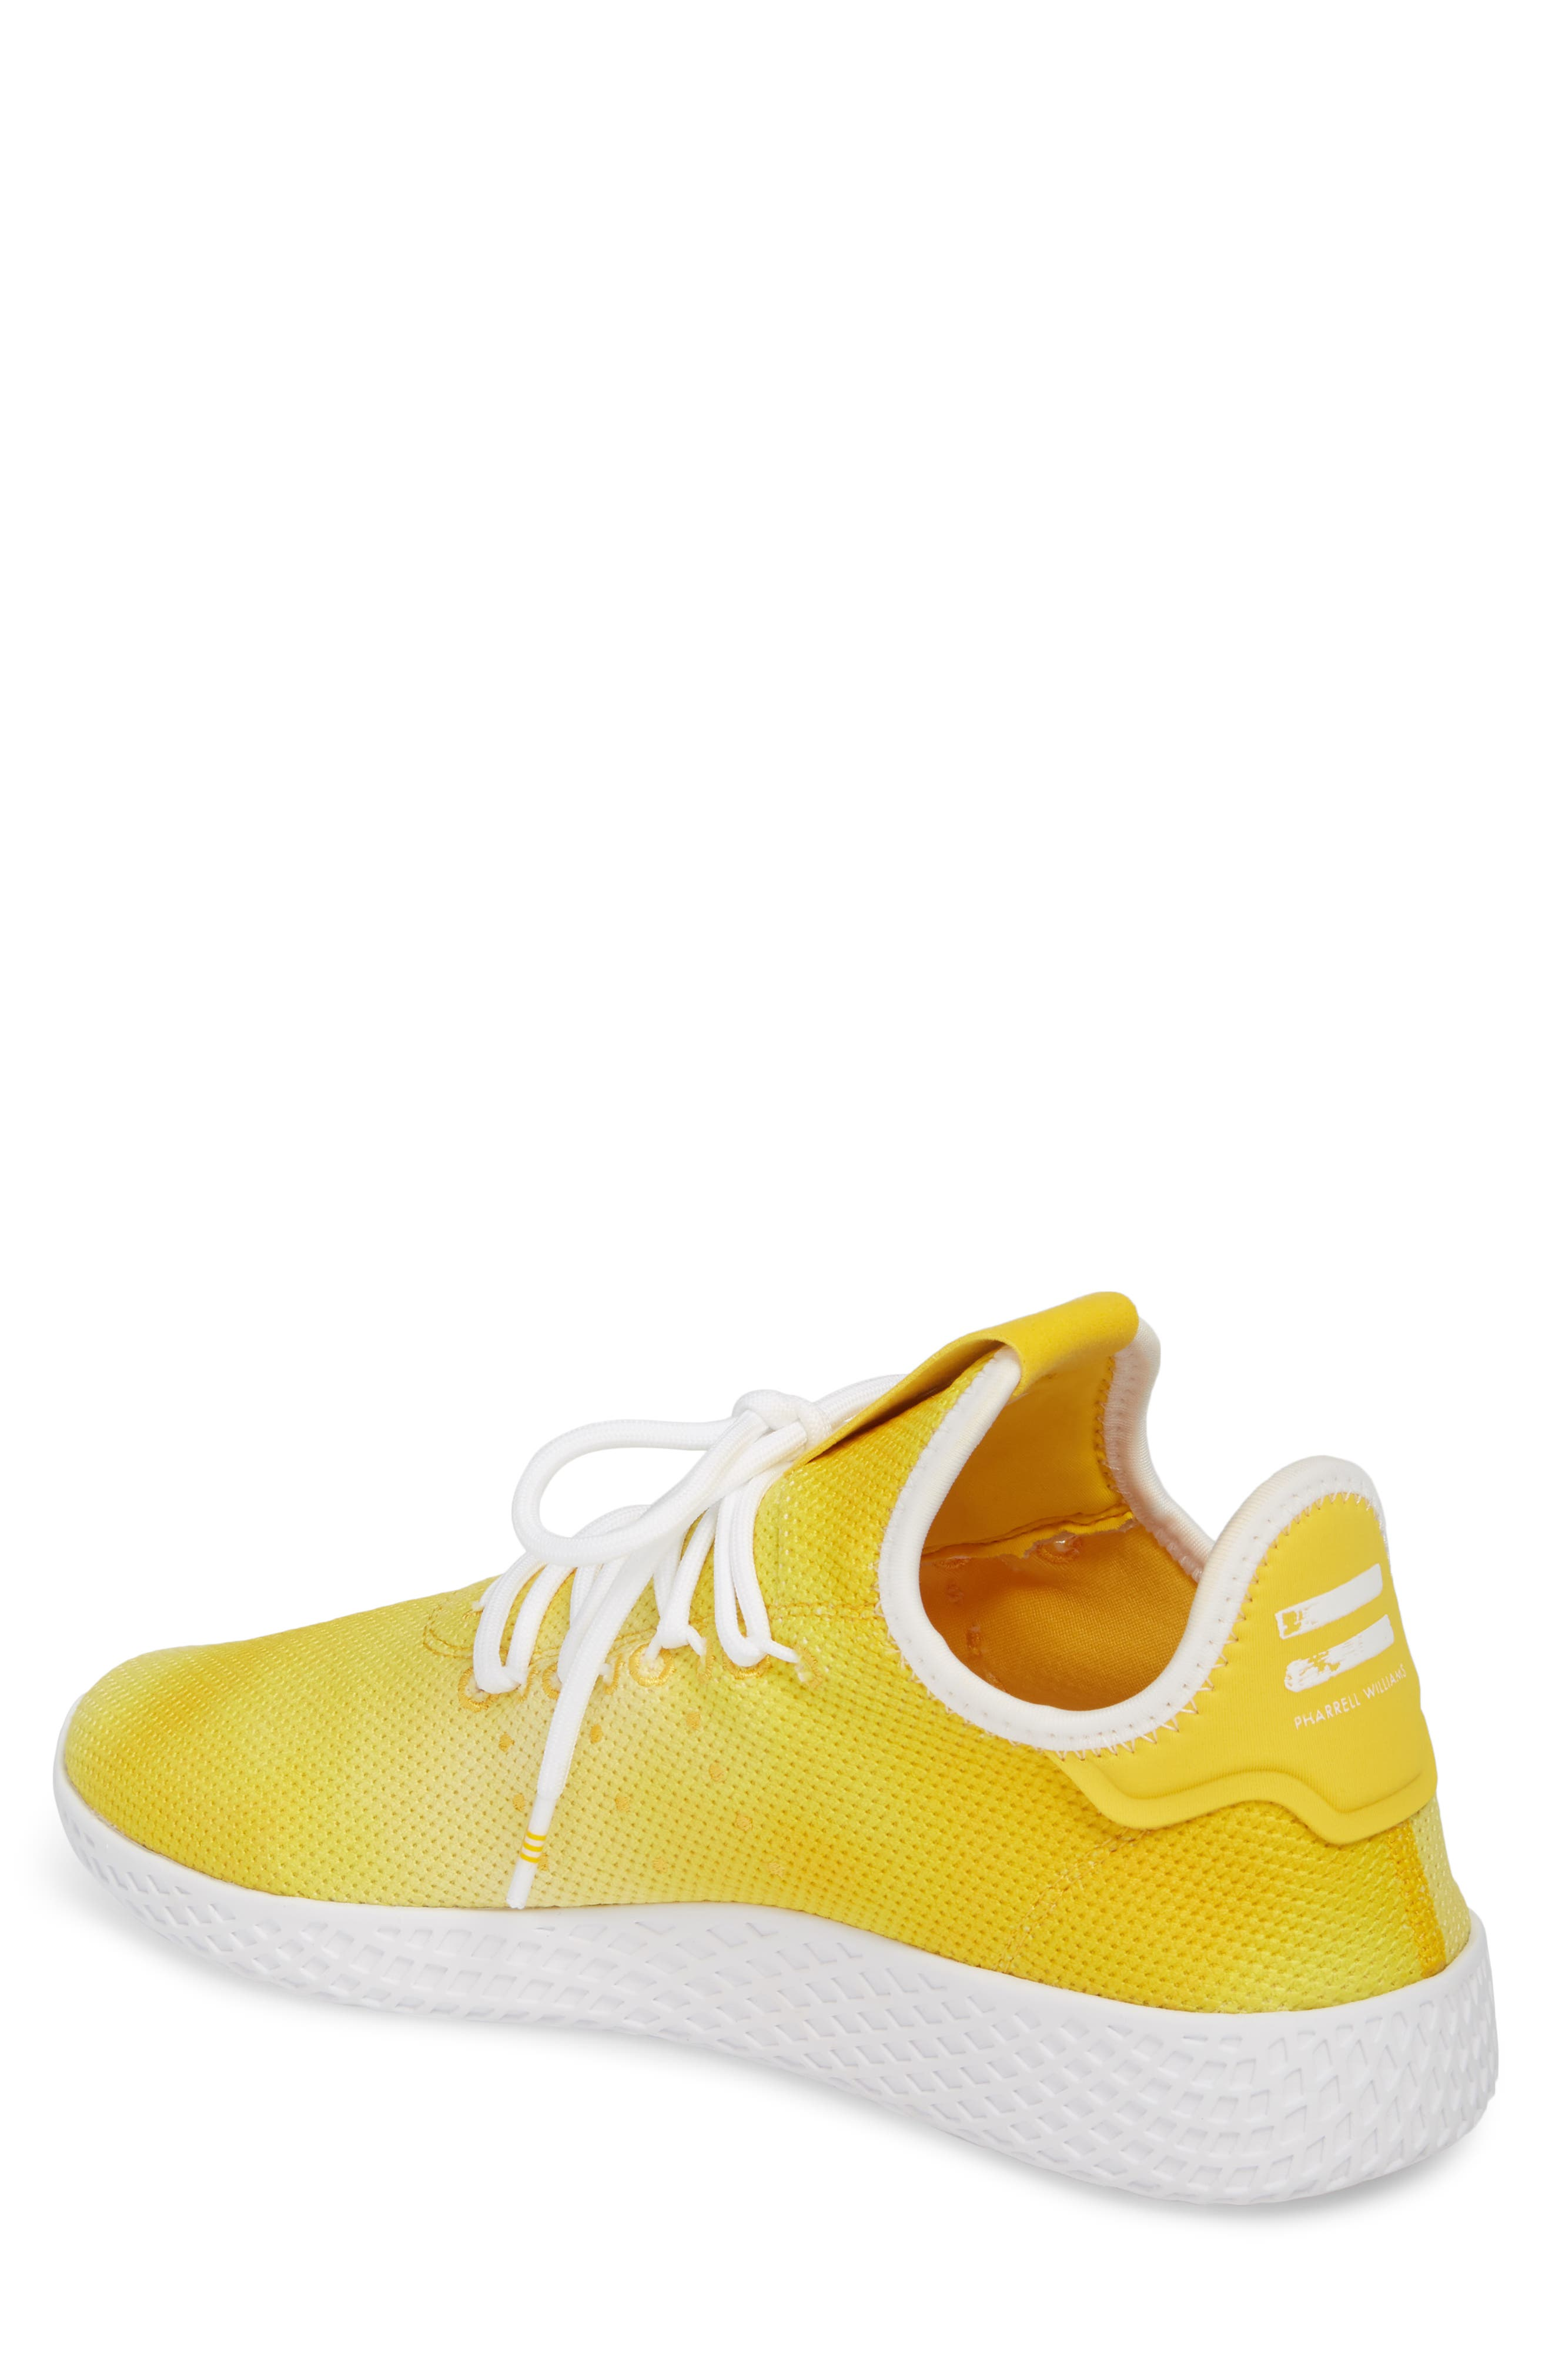 Pharrell Williams Tennis Hu Sneaker,                             Alternate thumbnail 2, color,                             Yellow/ White